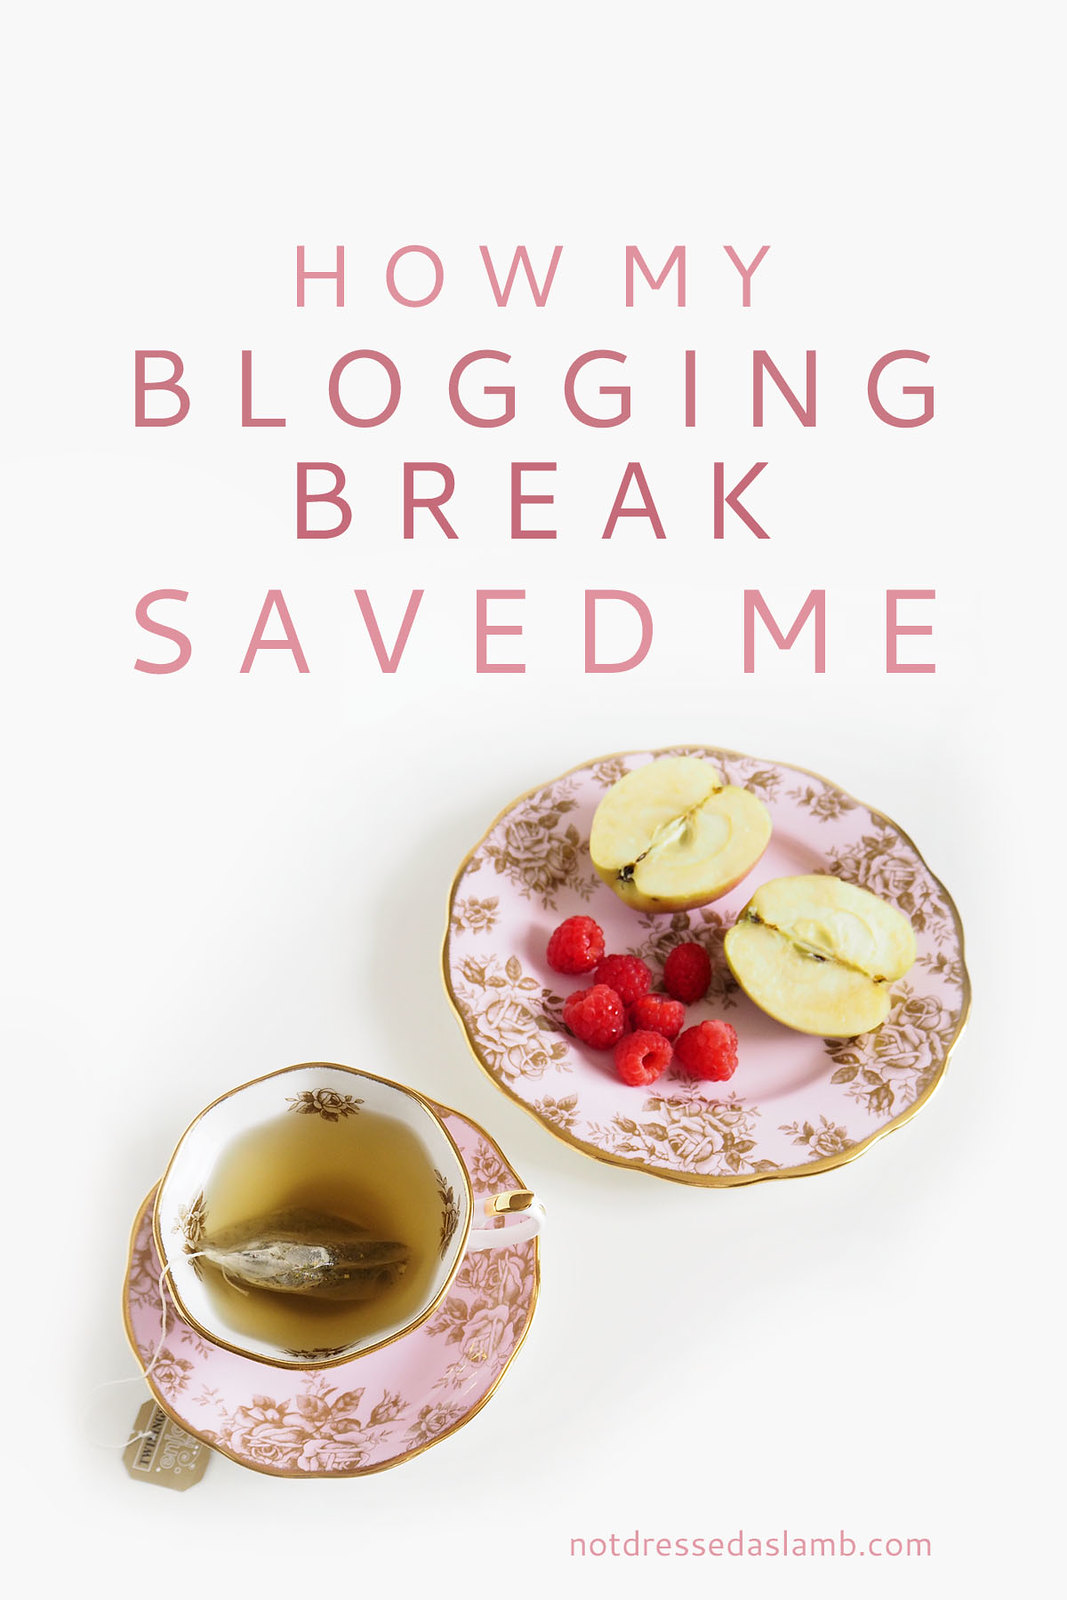 Blogging Tips: How my blogging break saved me - emotionally and financially (The benefits of a well-earned break from blogging) | Not Dressed As Lamb